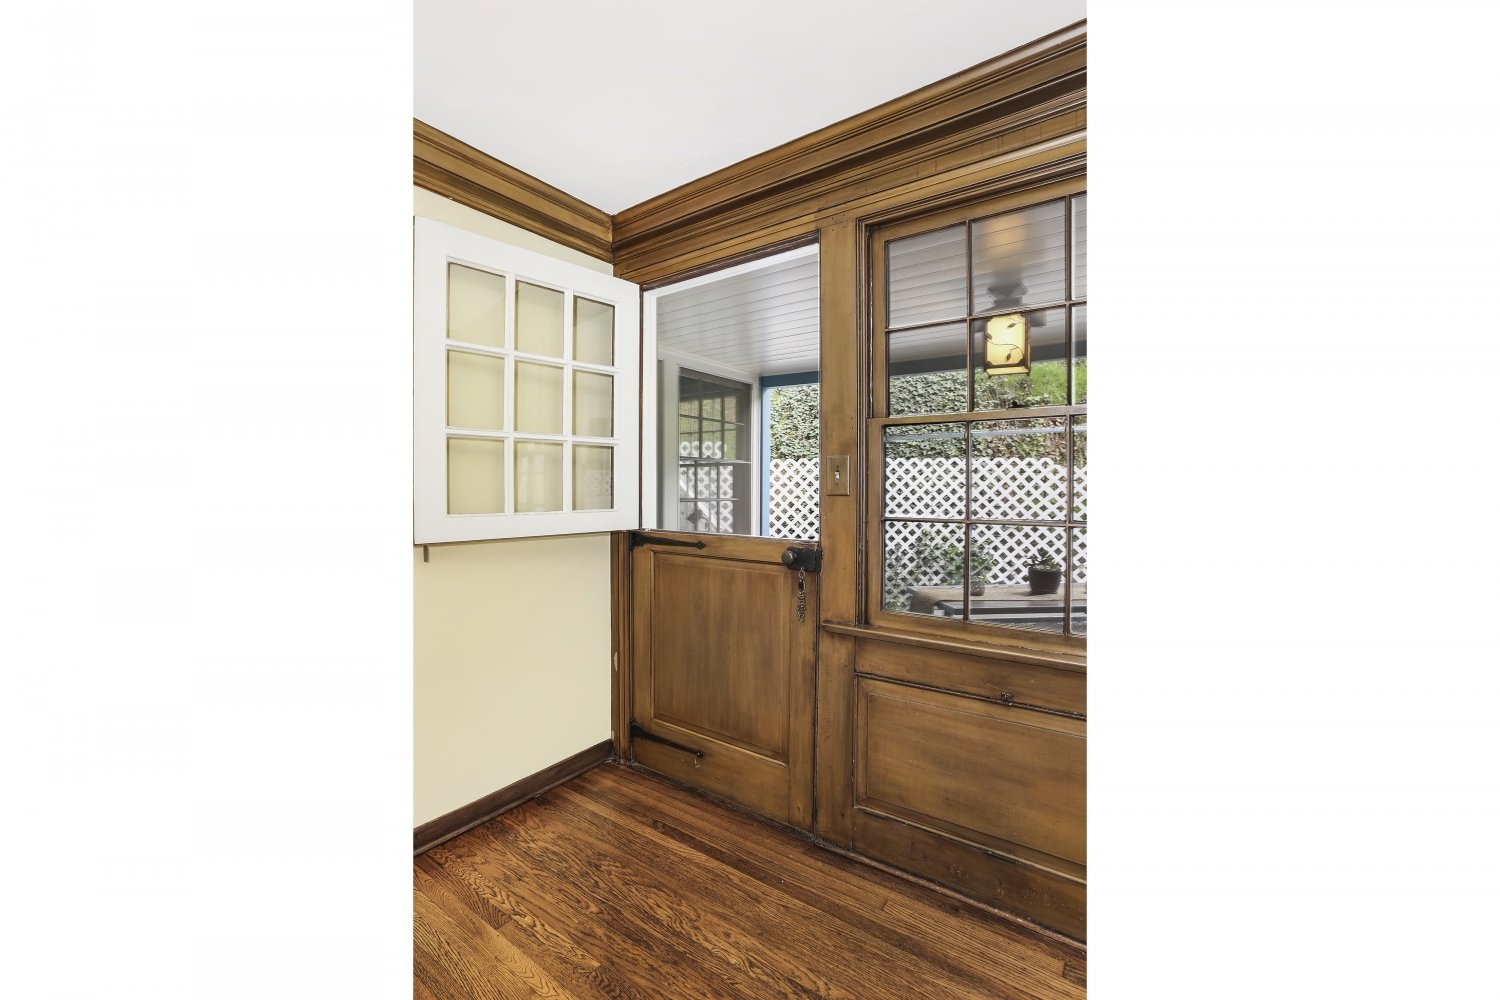 Pennsylvania Dutch Cottage Gerard Colford for sale in Glendale CA - Living Room Dutch Door